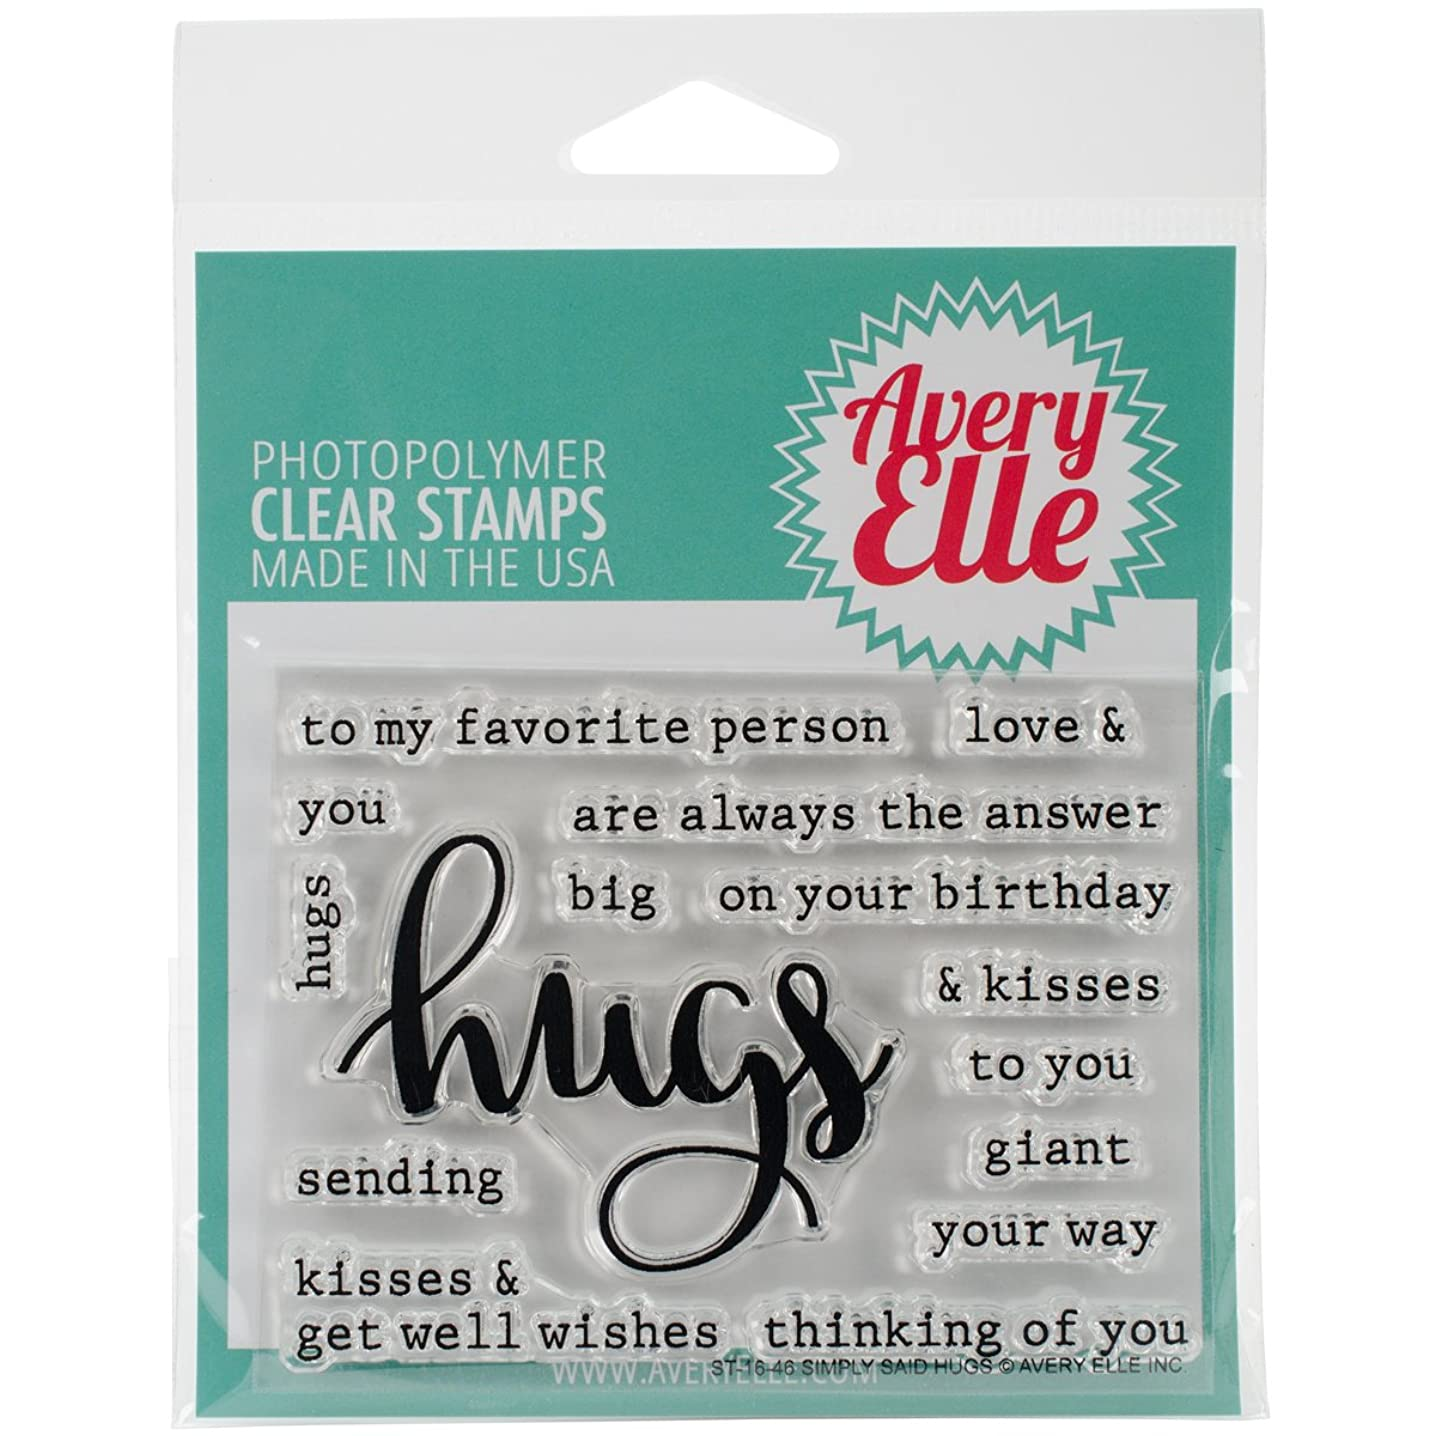 Avery Elle ST-1646 Clear Stamp Set 4